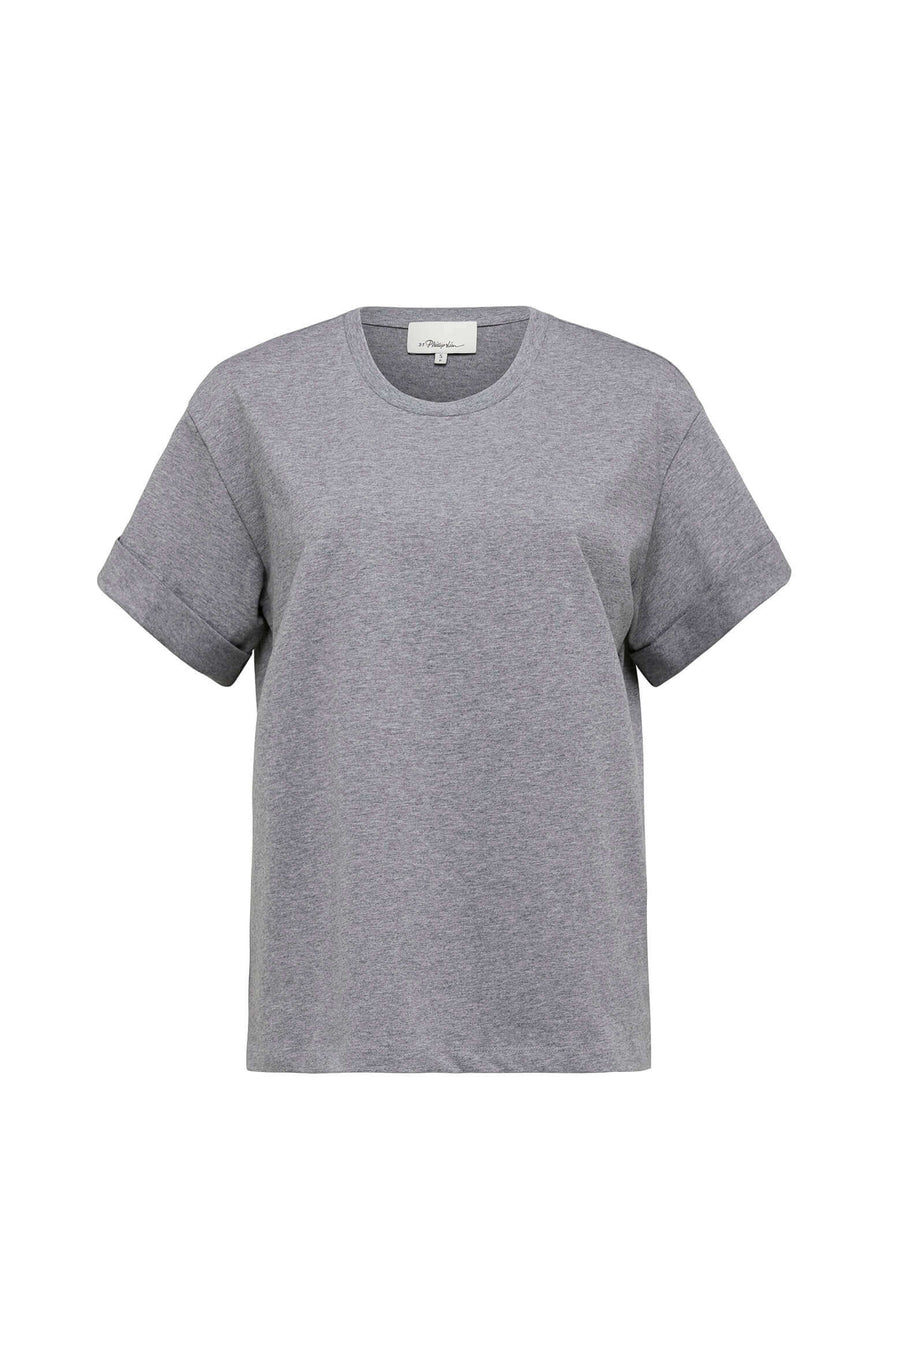 3.1 Phillip Lim Short Sleeve T-Shirt with Sleeve Tab in Grey Melange from The New Trend